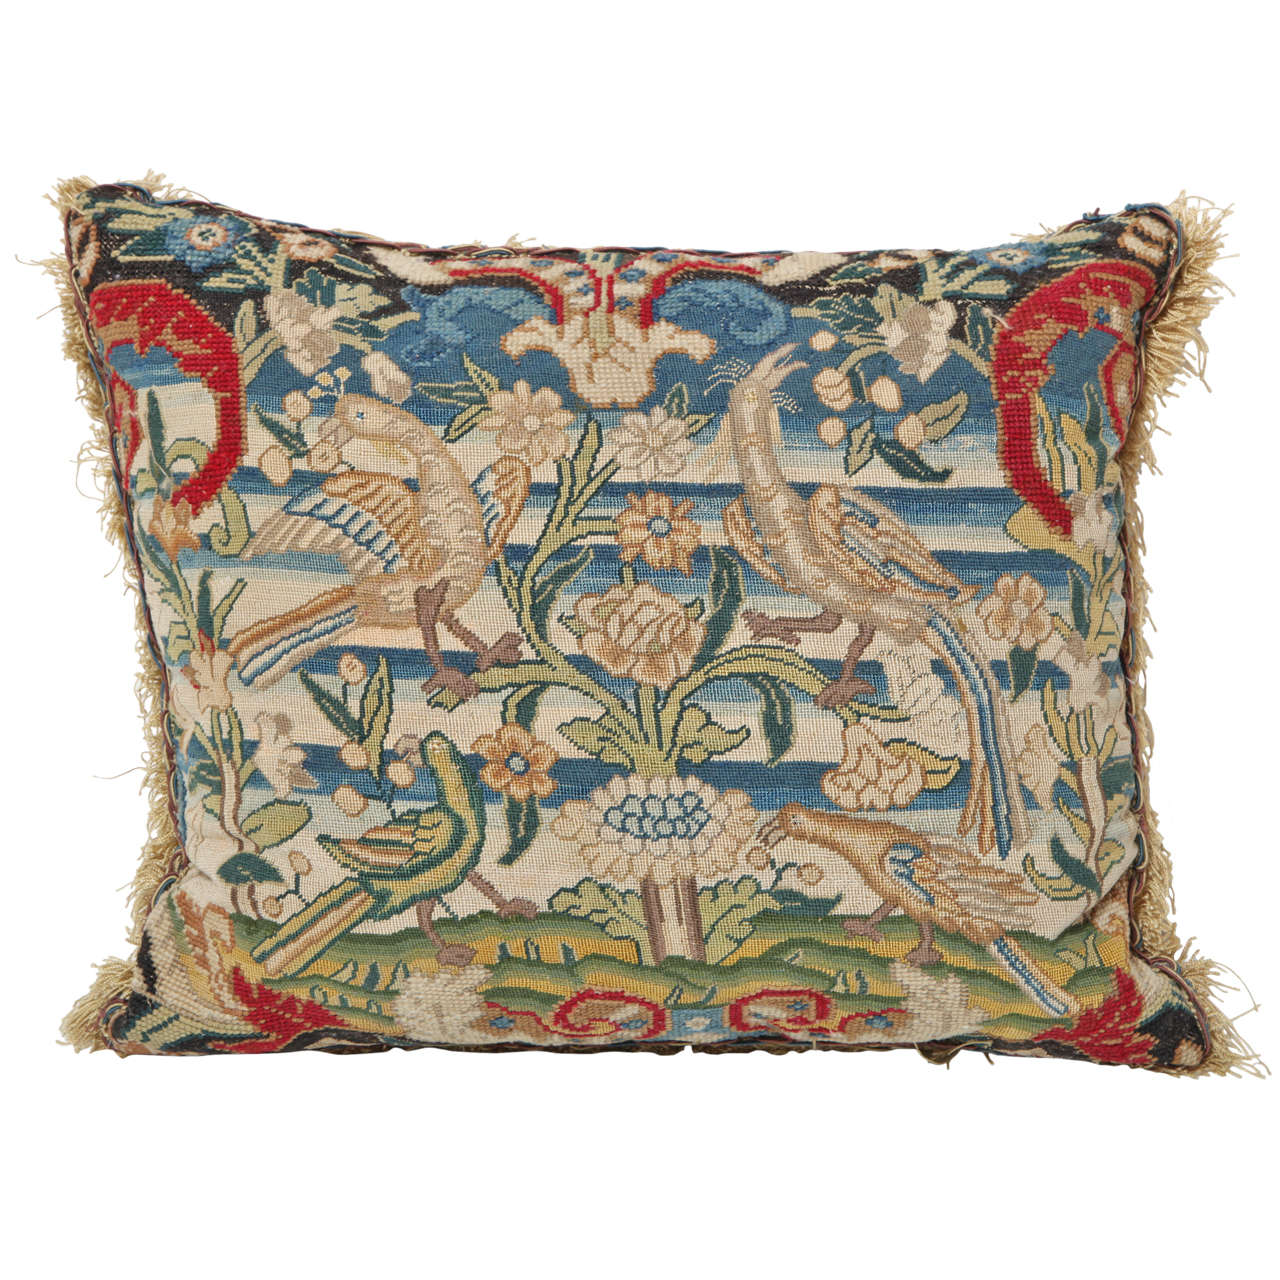 18th Century Tapestry Fragment Made into a Cushion